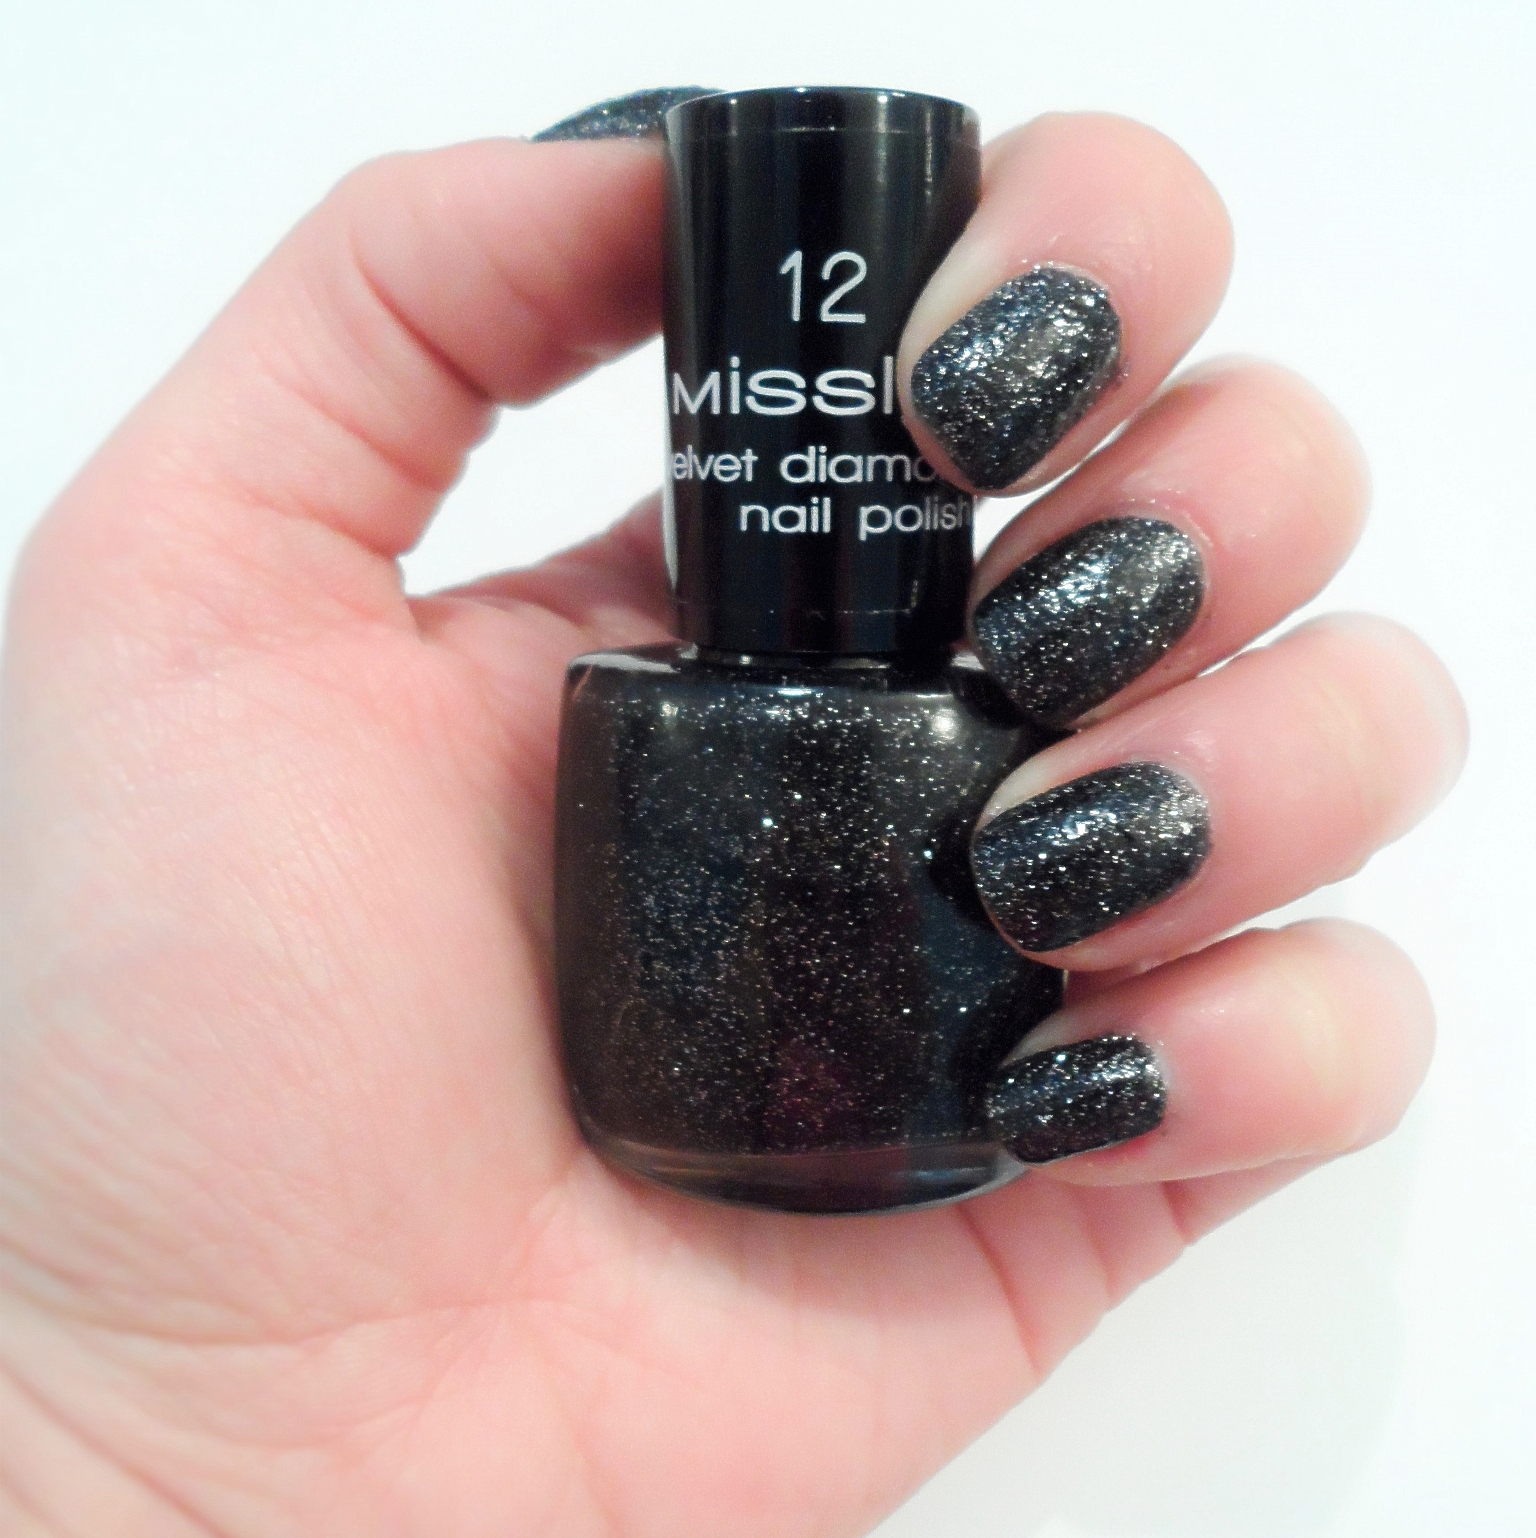 MISSLYN VELVET DIAMOND NAIL POLISH - The Girl With Bangs